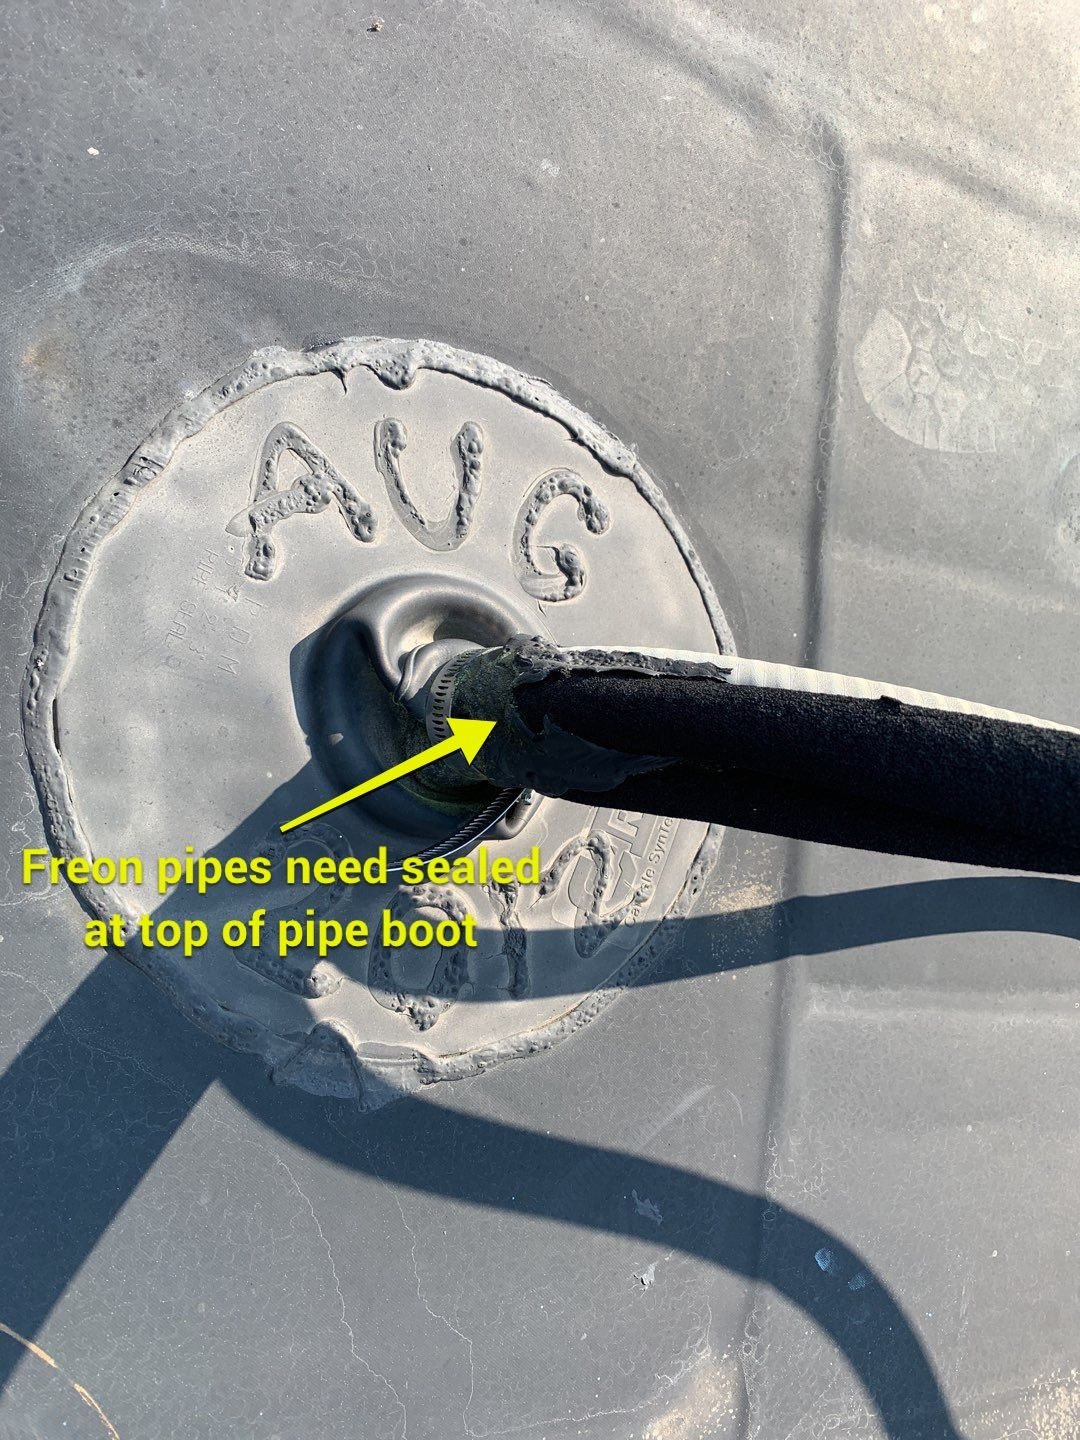 freon pipes need sealed at top of pipe boot